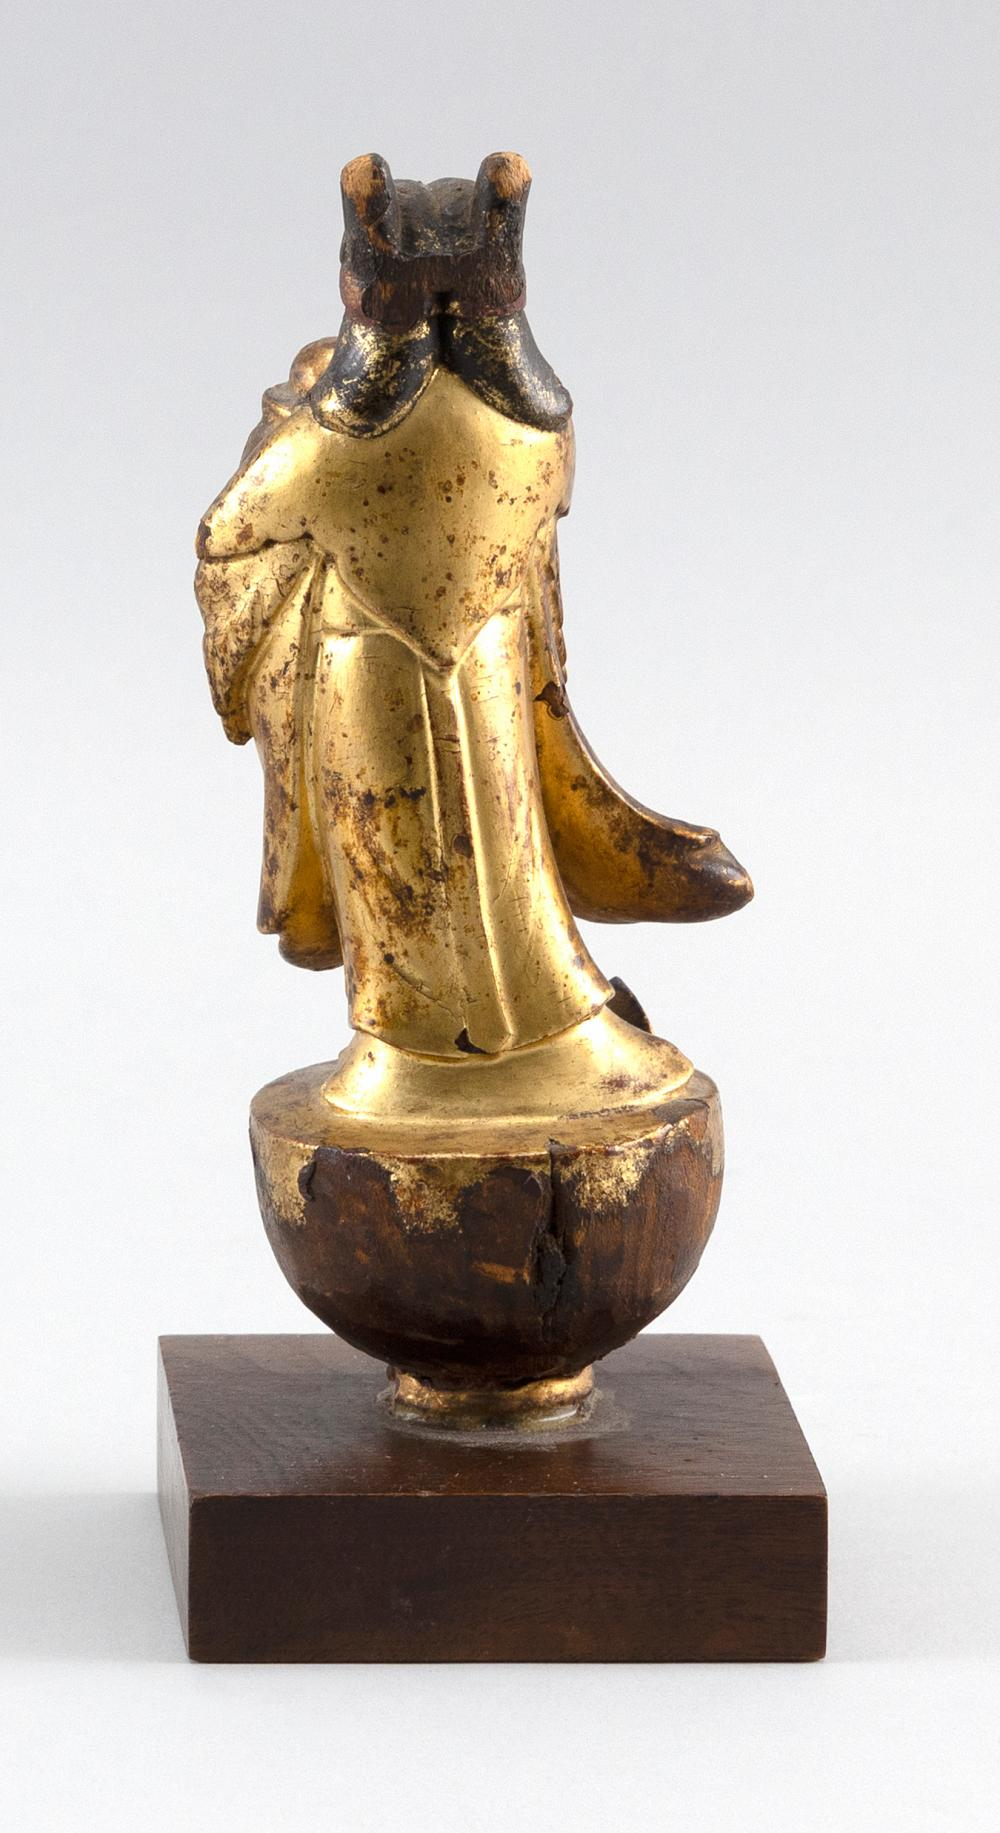 CHINESE GILT WOODEN POLE FINIAL In the form of an acolyte standing on a lotus pod and holding an offering. Height 6